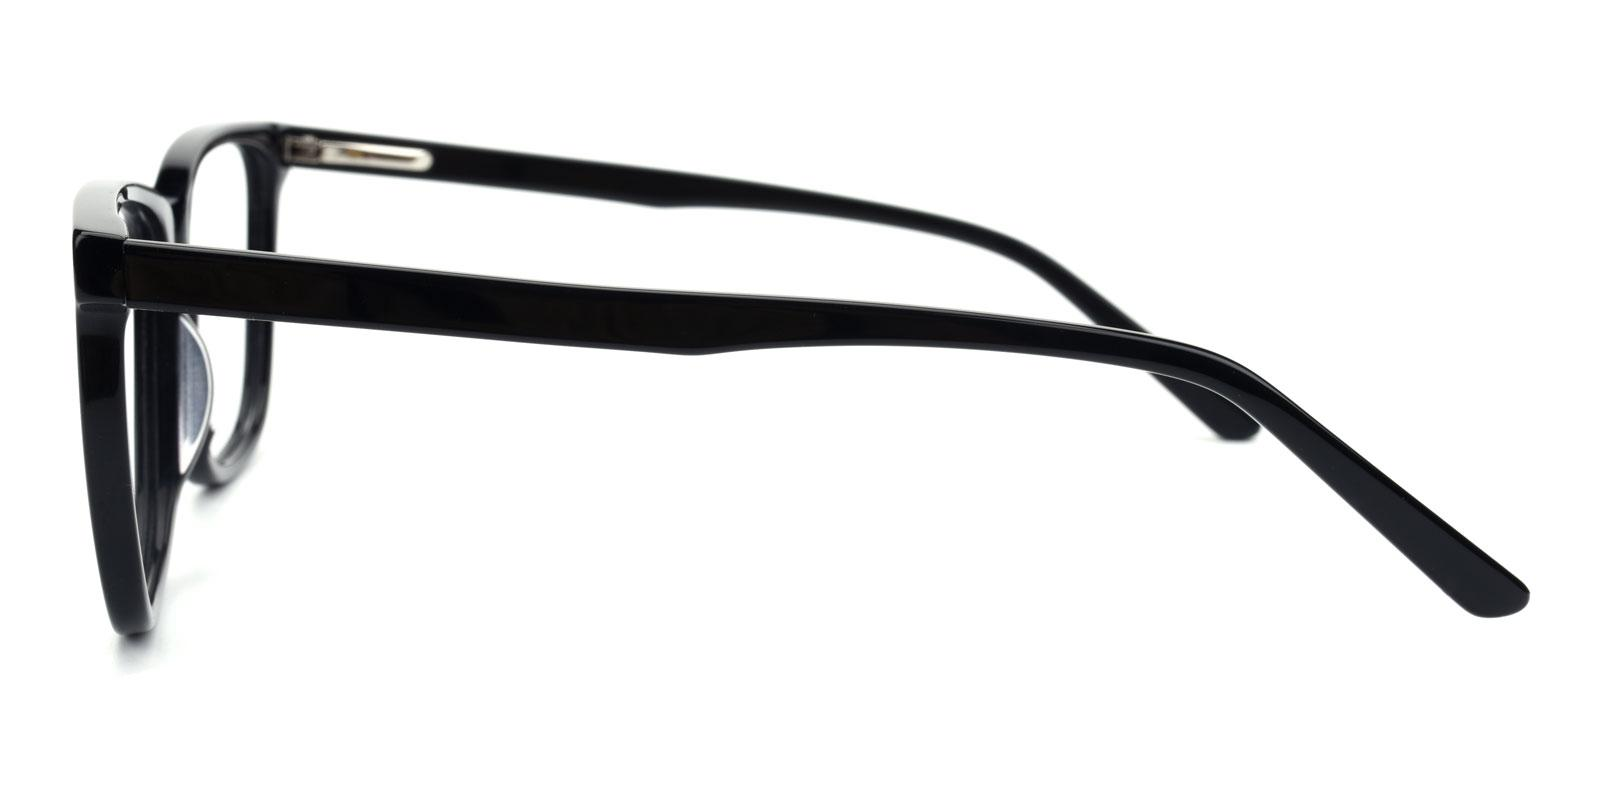 Genter-Black-Square-Acetate-Eyeglasses-additional3